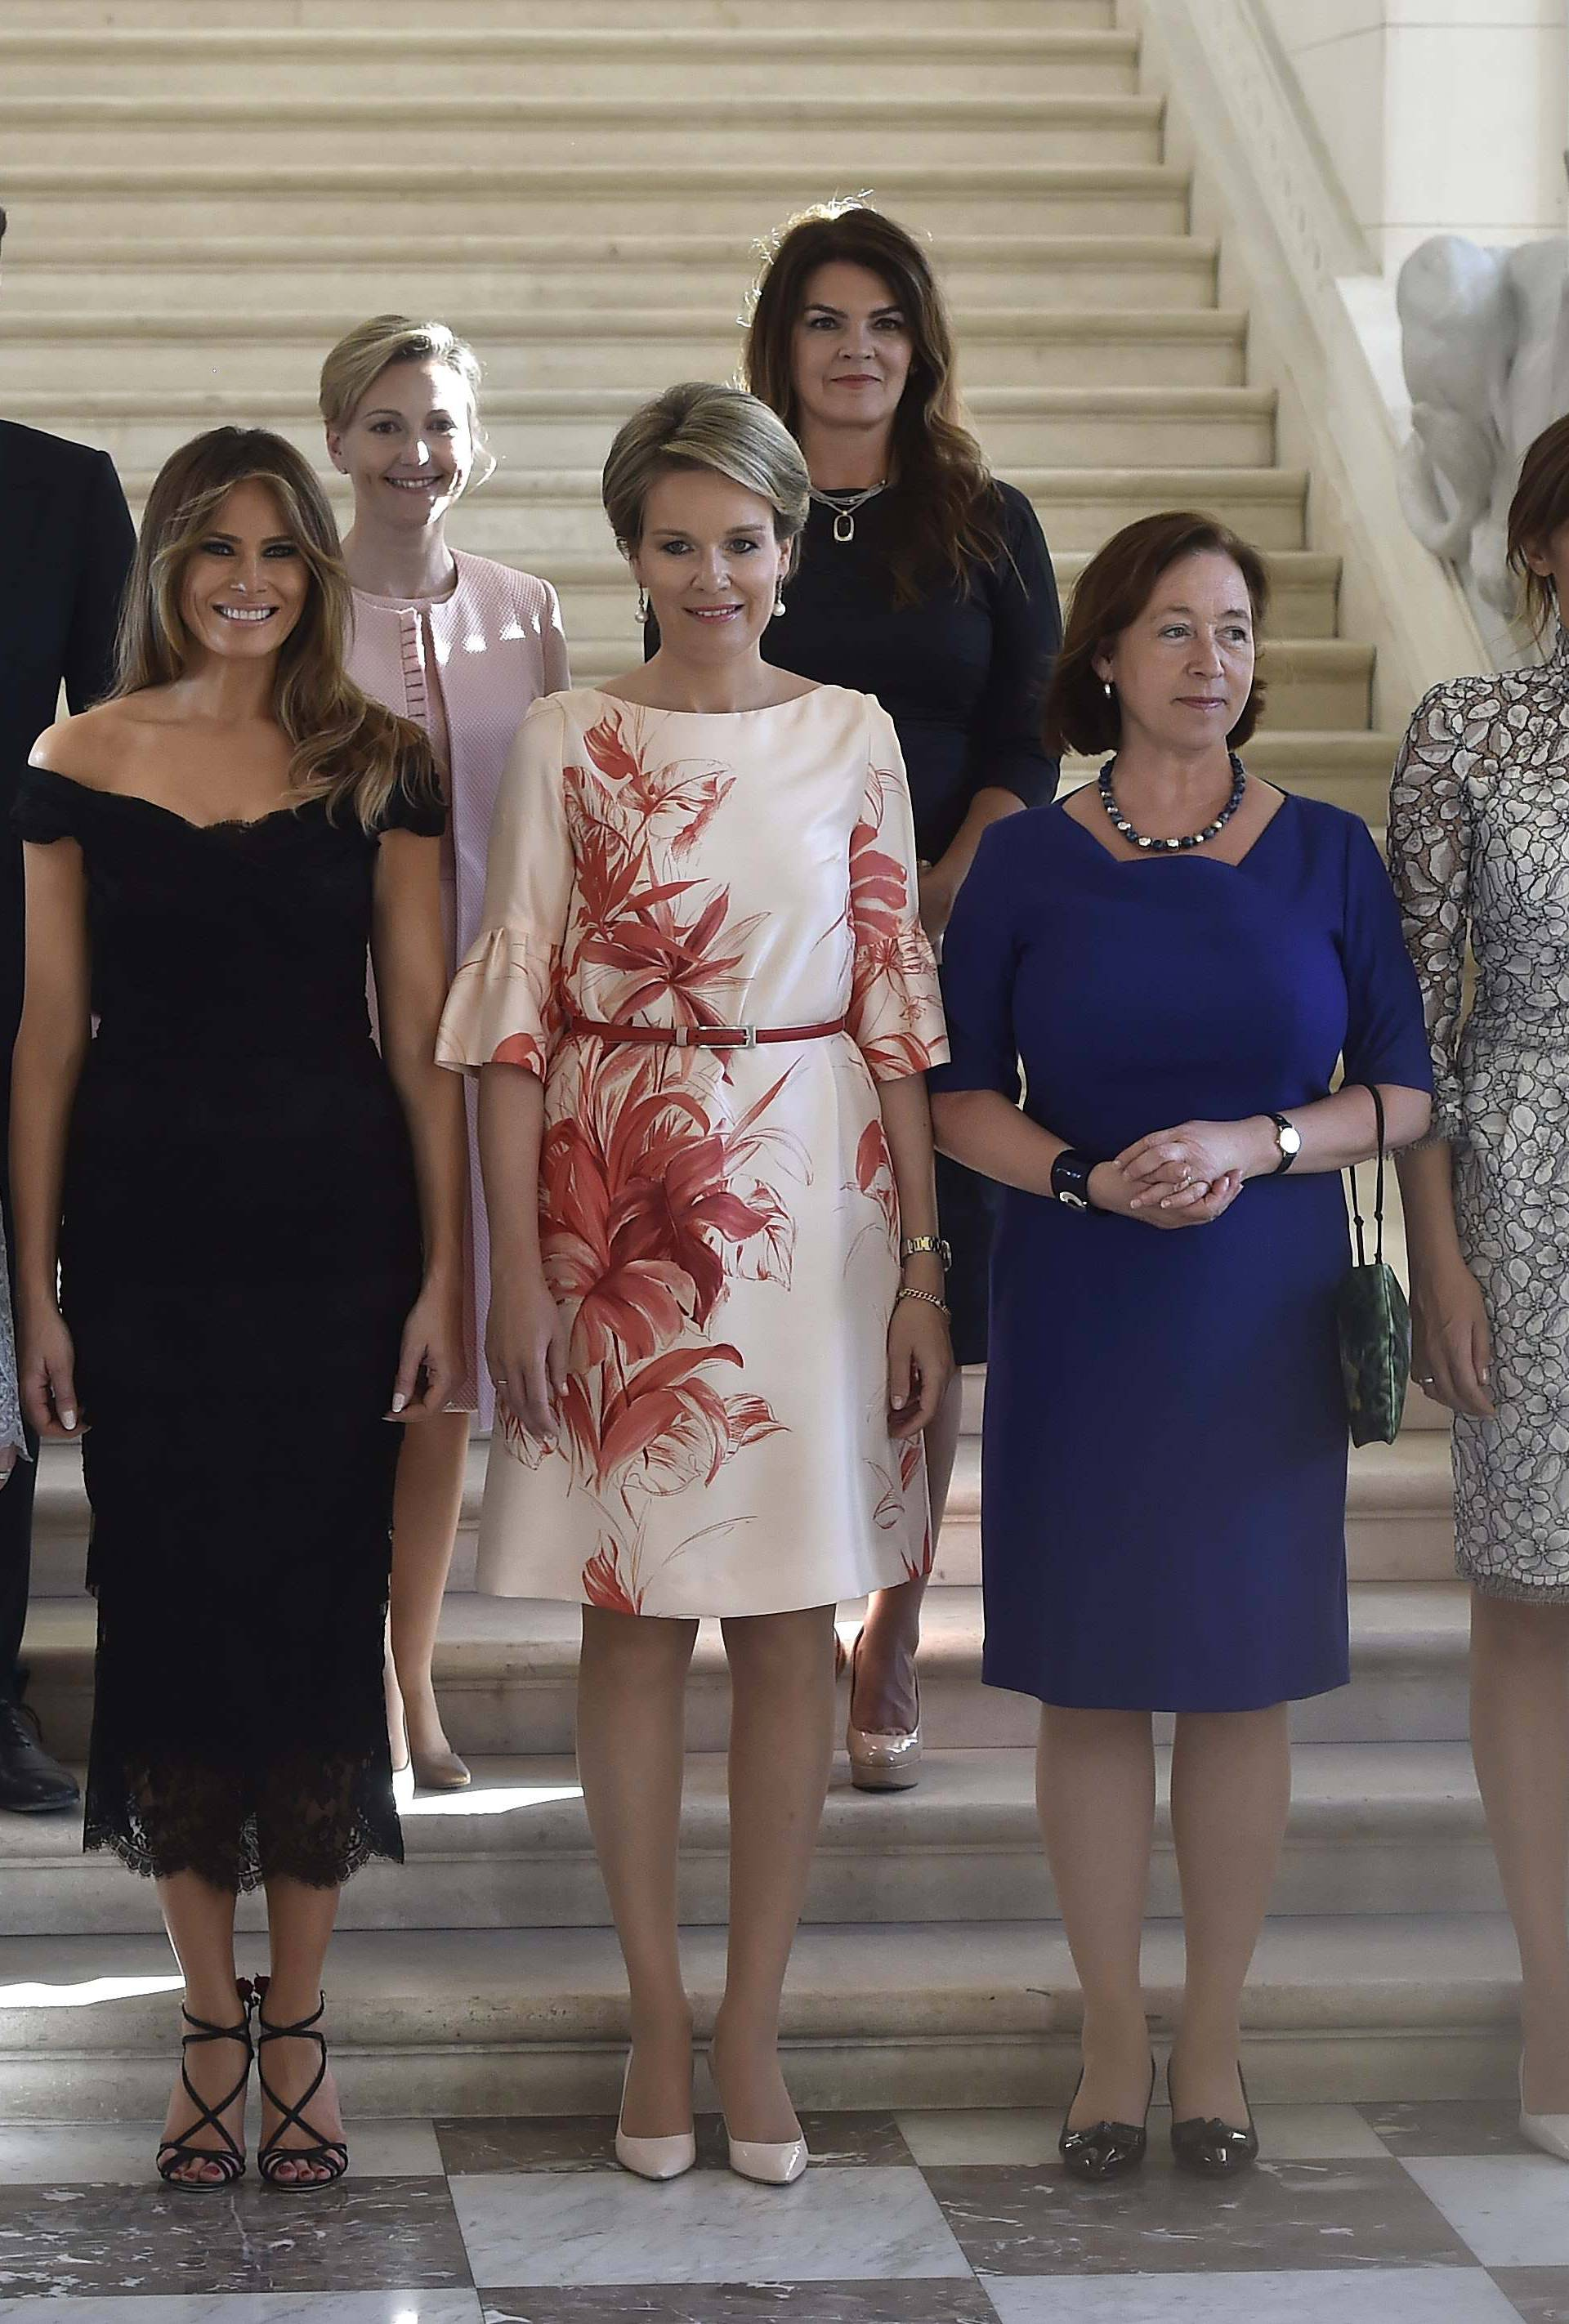 Queen Mathilde of Belgium poses for a group picture at the Royal Castle of Laeken in Brussels